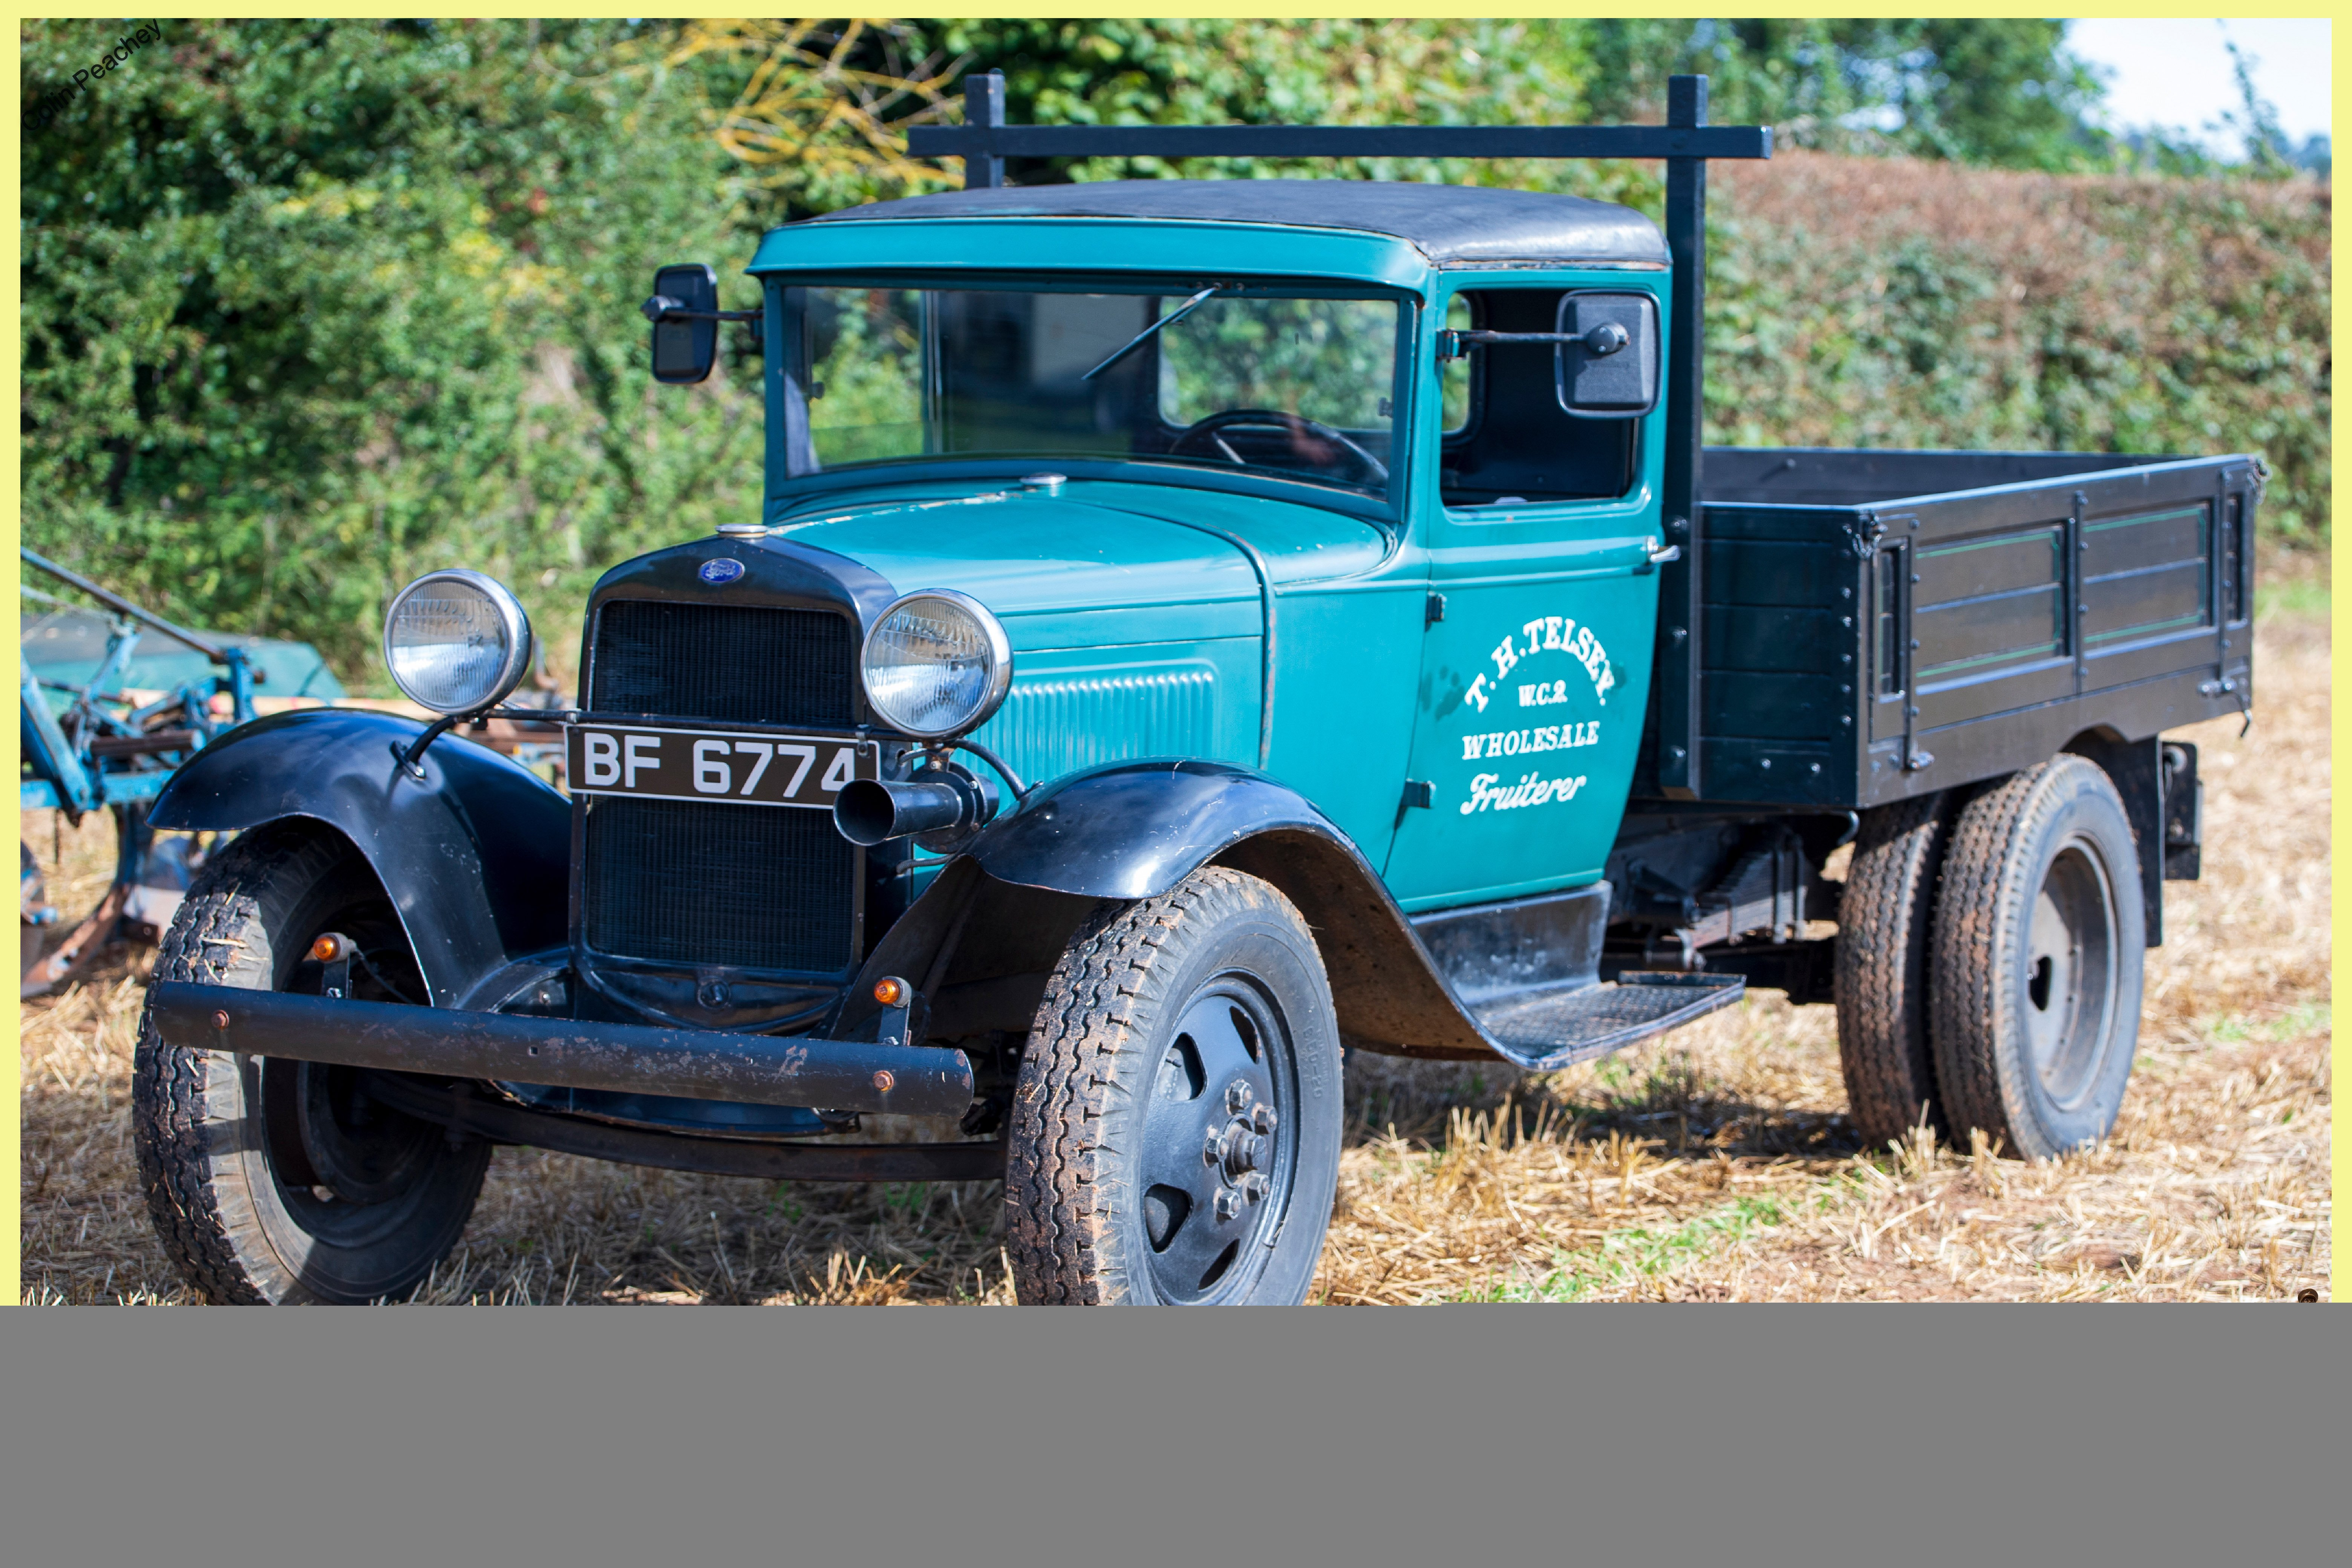 Ford Truck, 1930, BF 6774